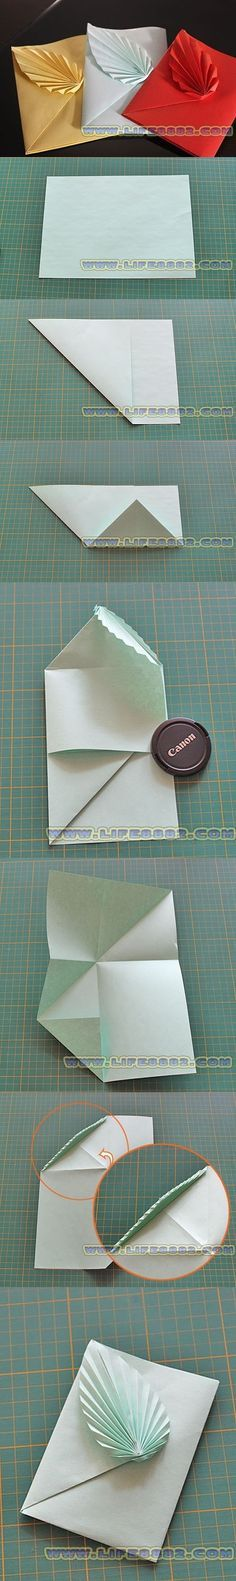 This is a special project to fold an envelope with leaf with only a piece of paper, so amazing that I'd love to give it a try with kids. Origami Paper Folding, Origami Envelope, Origami And Kirigami, Gift Envelope, Diy Origami, Origami Tutorial, Envelope Tutorial, Origami Ideas, Hobbies And Crafts